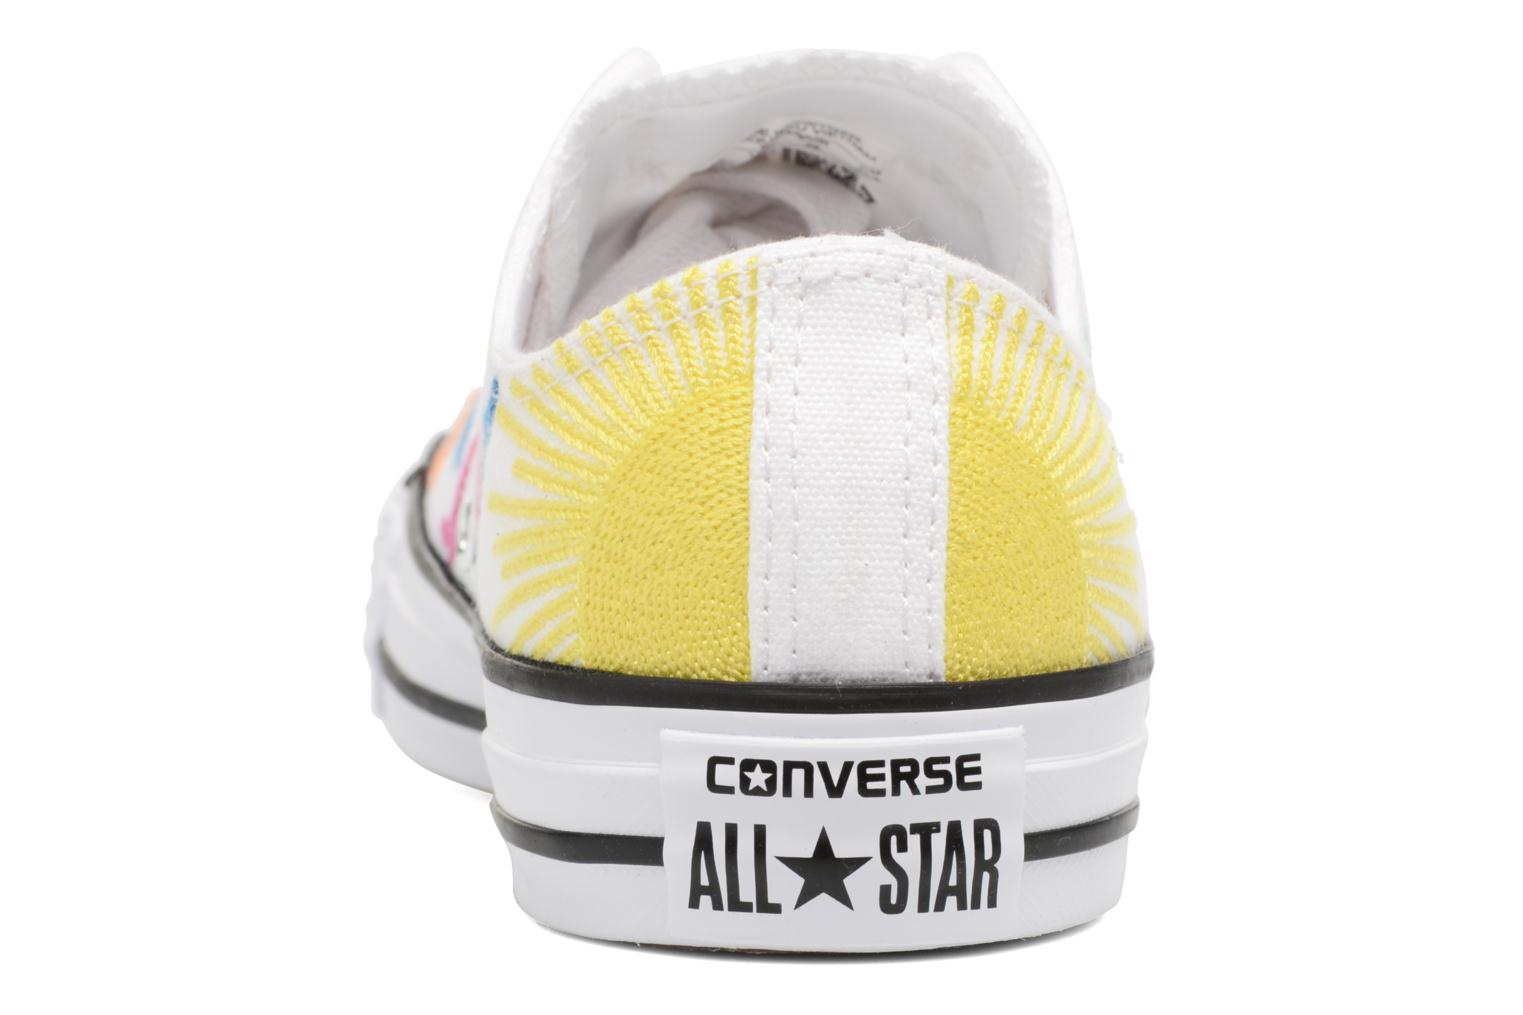 Chuck Taylor All Star Mara Hoffman Rainbow Birds Ox White/Black/White